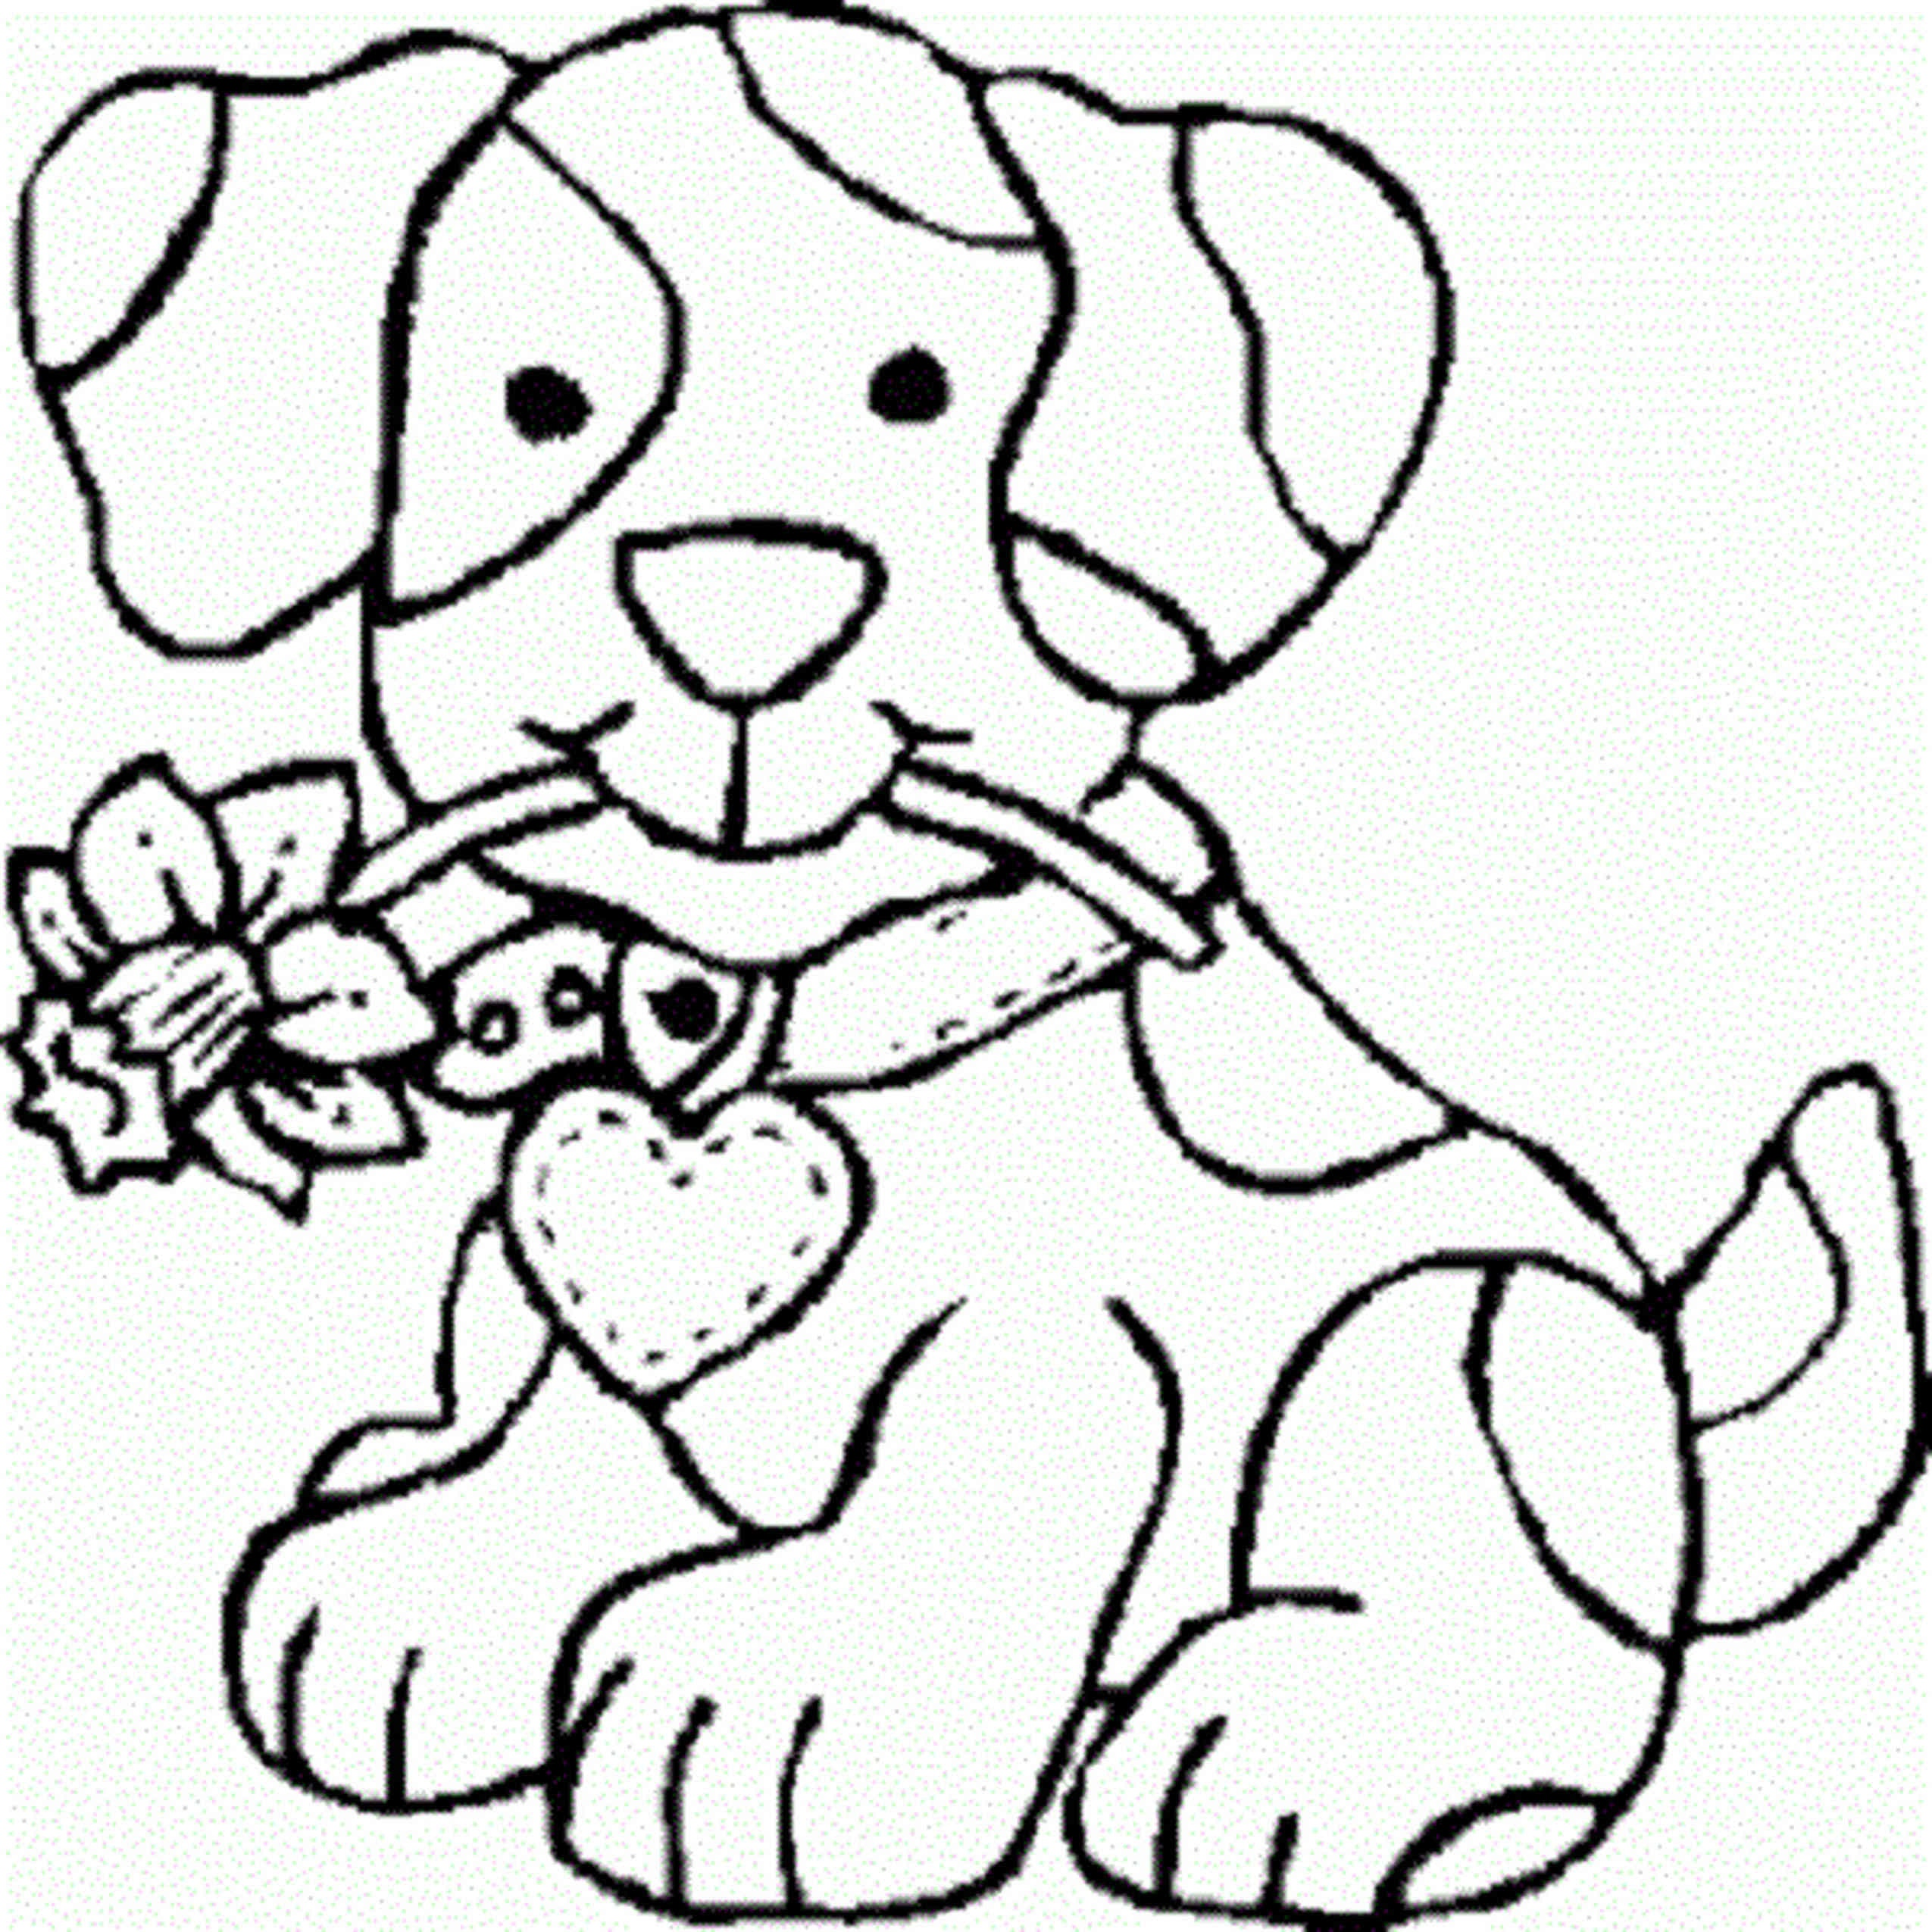 Coloring Pages For Teens   Free Download Best Coloring Pages For - Free Printables For Girls